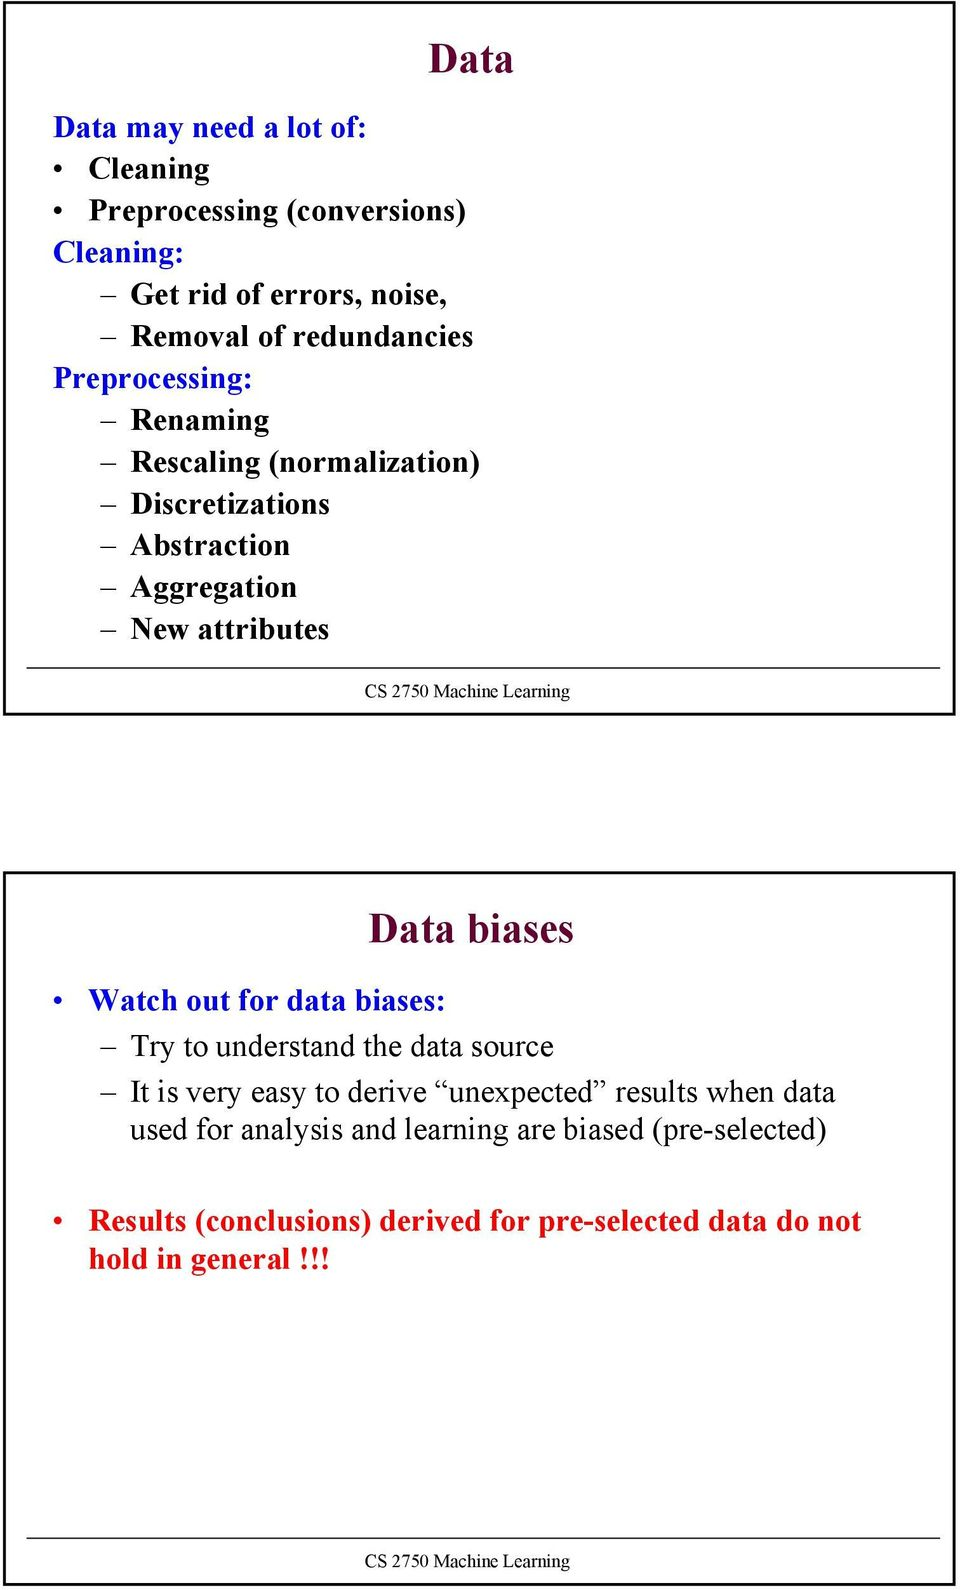 Watch out for data bases: Try to understand the data source It s very easy to derve unexpected results when data